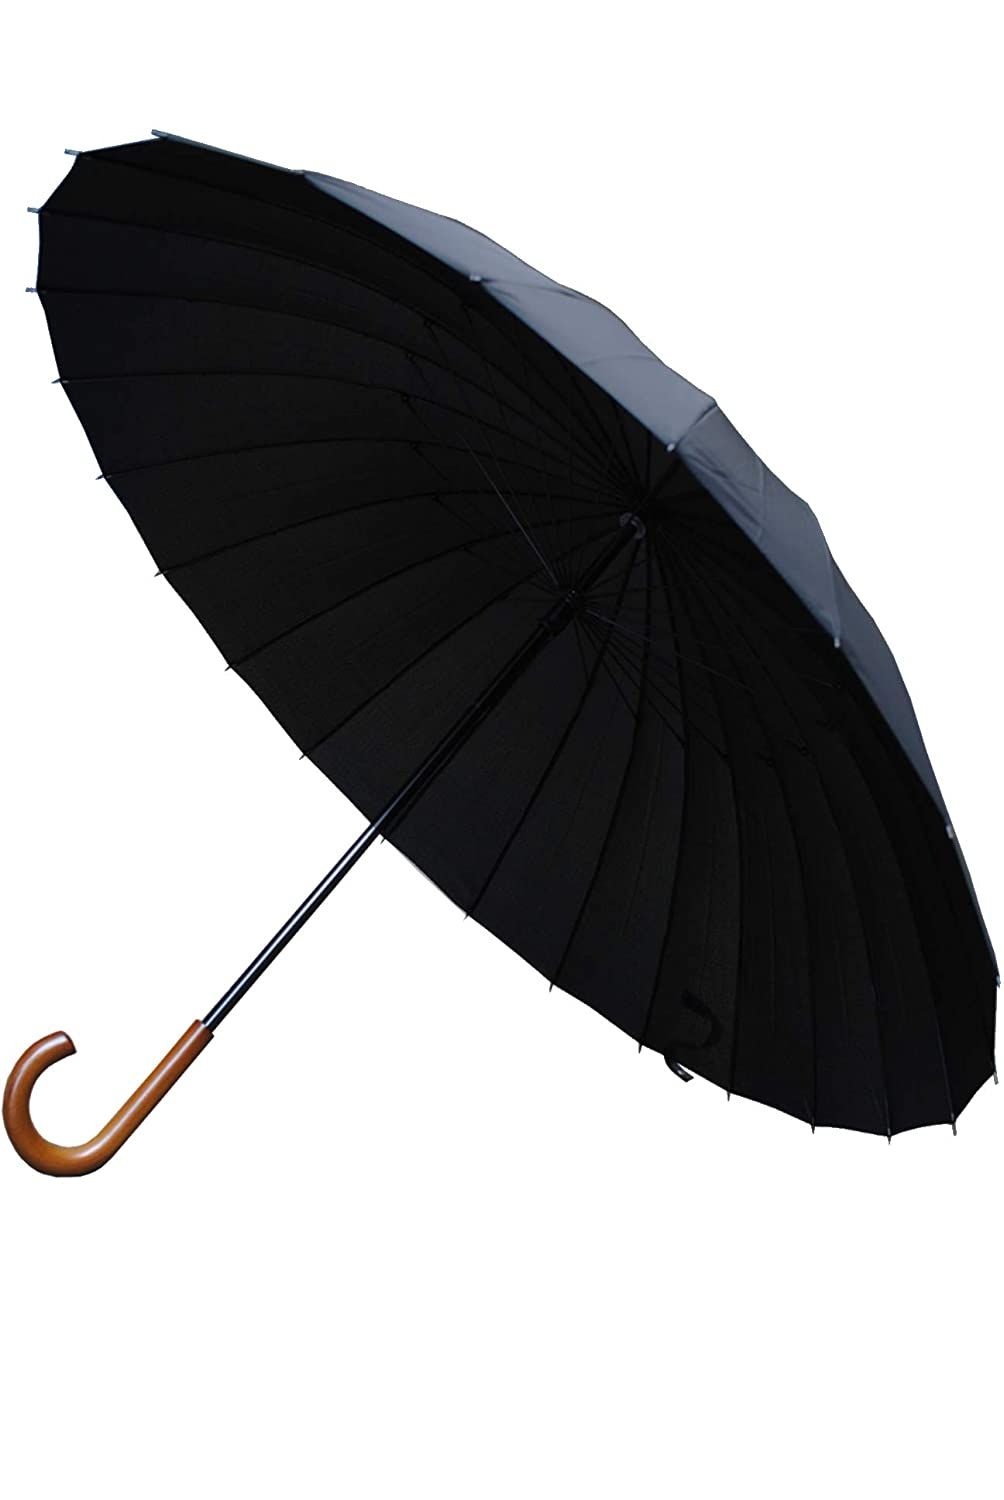 Collar and Cuffs London - 24 Ribs for Super-Strength - Windproof 95KPH Extra Strong - Triple Layer Reinforced Frame with Fiberglass - Wooden Hook Handle - Solid Wood - Black Canopy Umbrella CCLSTORMPUMB10273